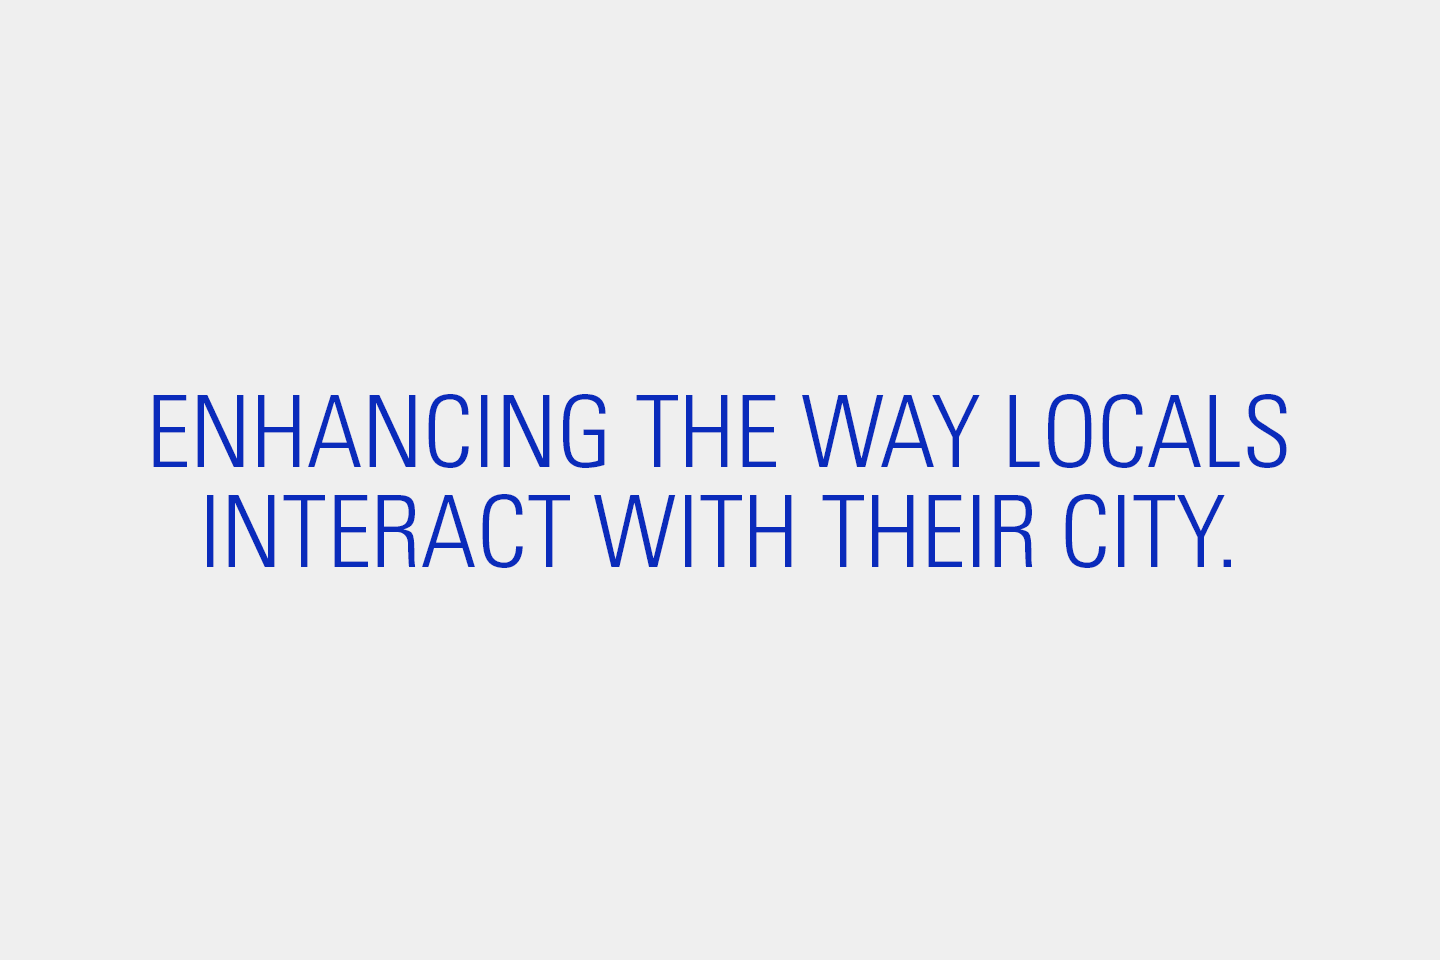 Enhancing the way locals interact with their city.